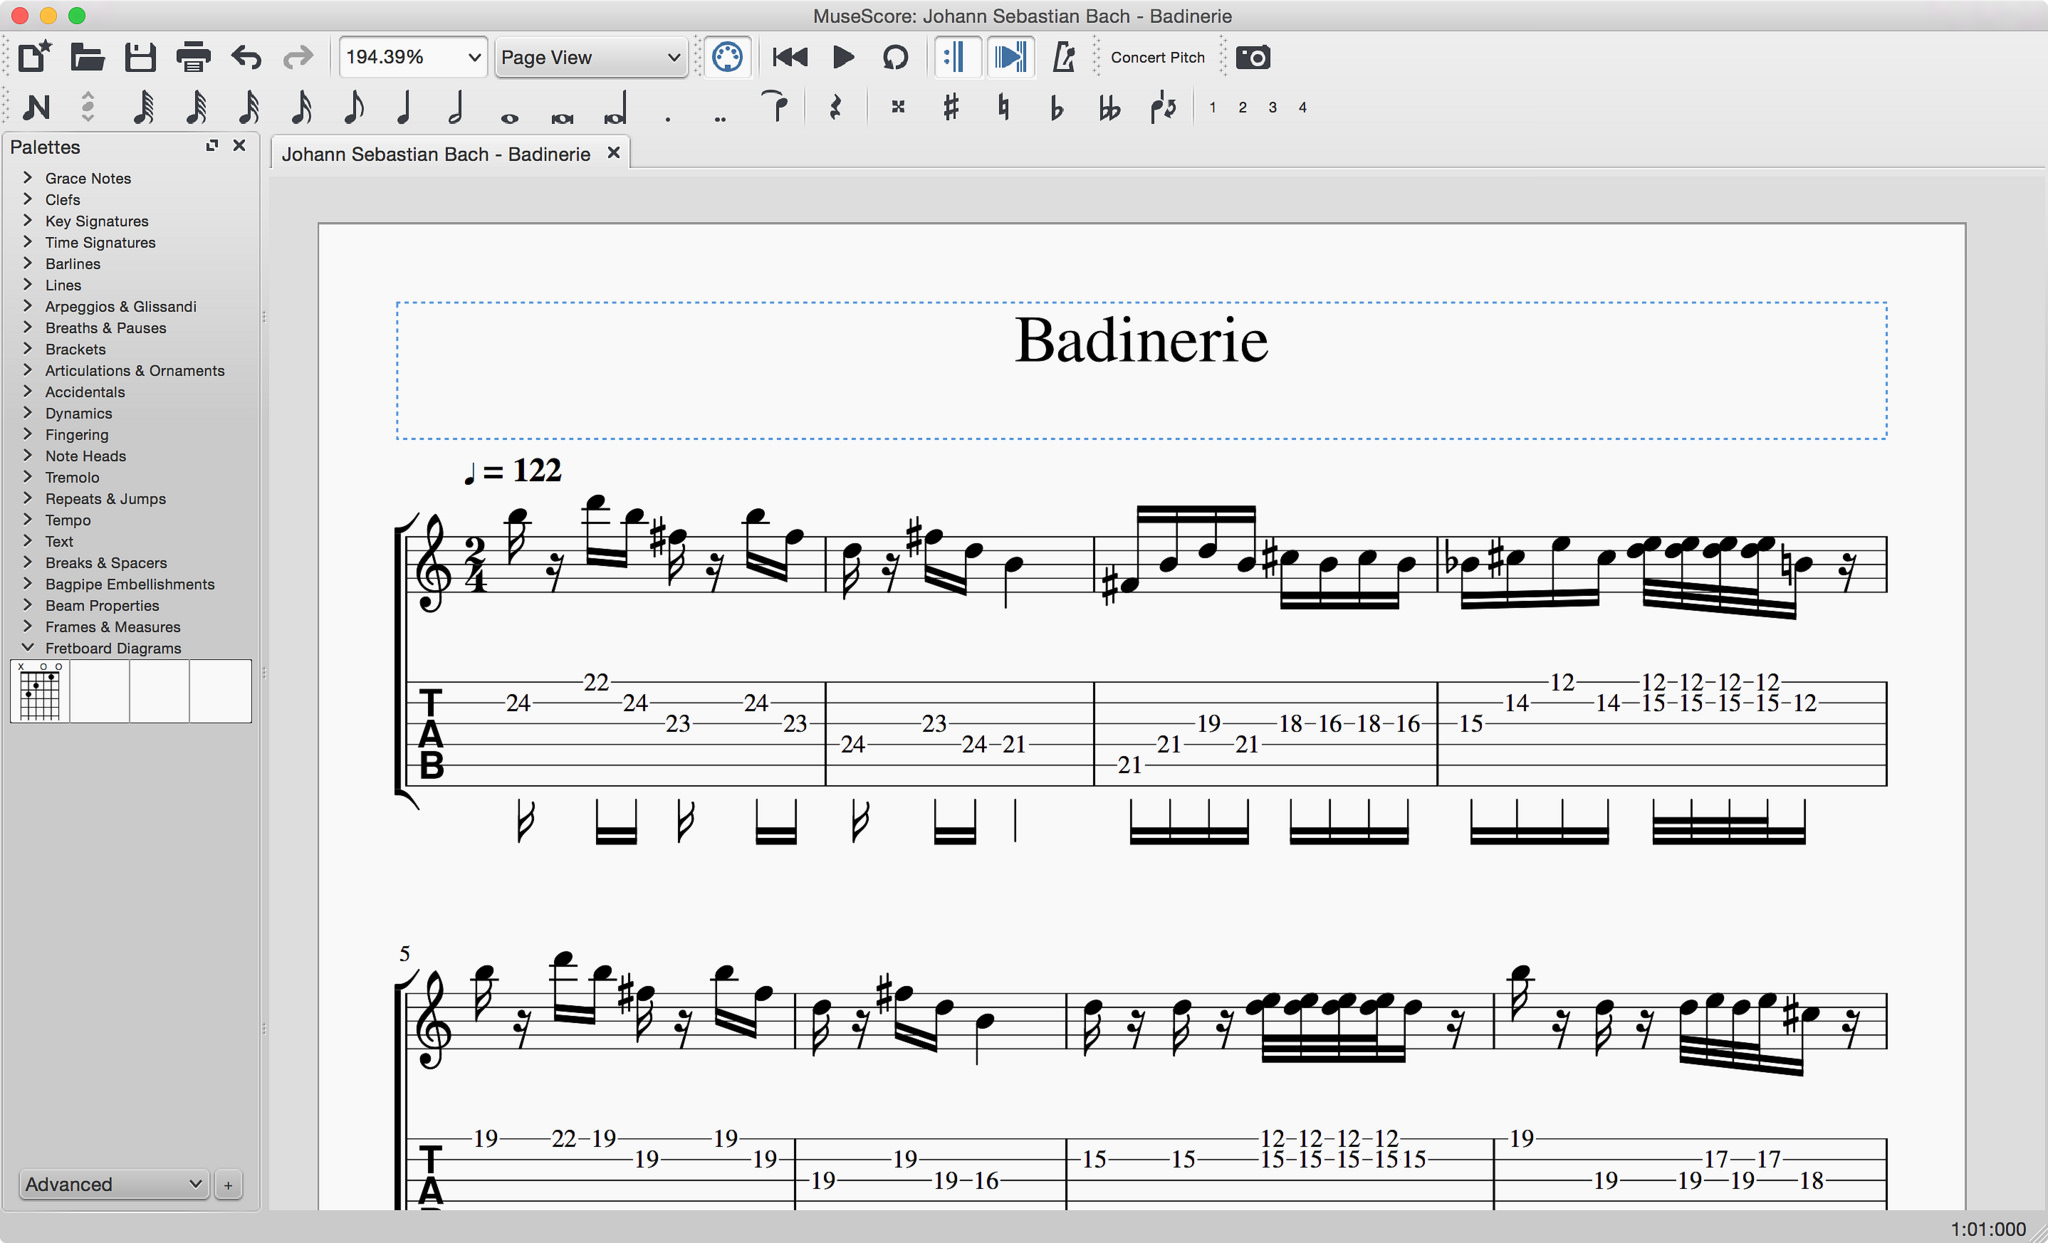 An Interview With Thomas Bonte On The Release Of Musescore